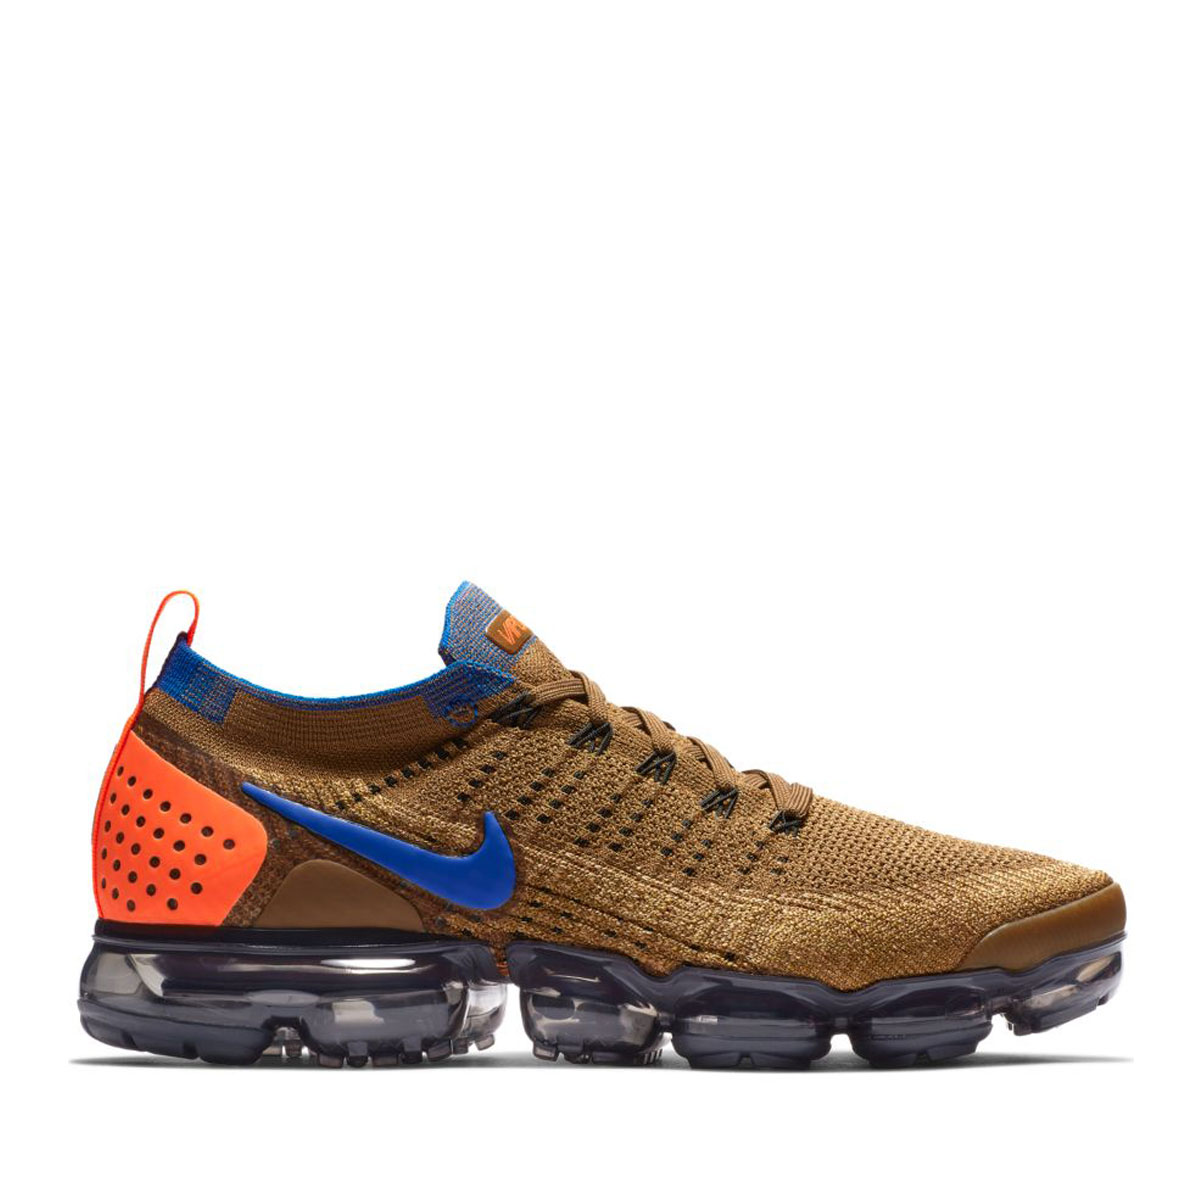 promo code f1186 be833 NIKE AIR VAPORMAX FLYKNIT 2 (GOLDEN BEIGE RACER BLUE-CLUB GOLD) (Nike air  vapor max fried food knit 2)